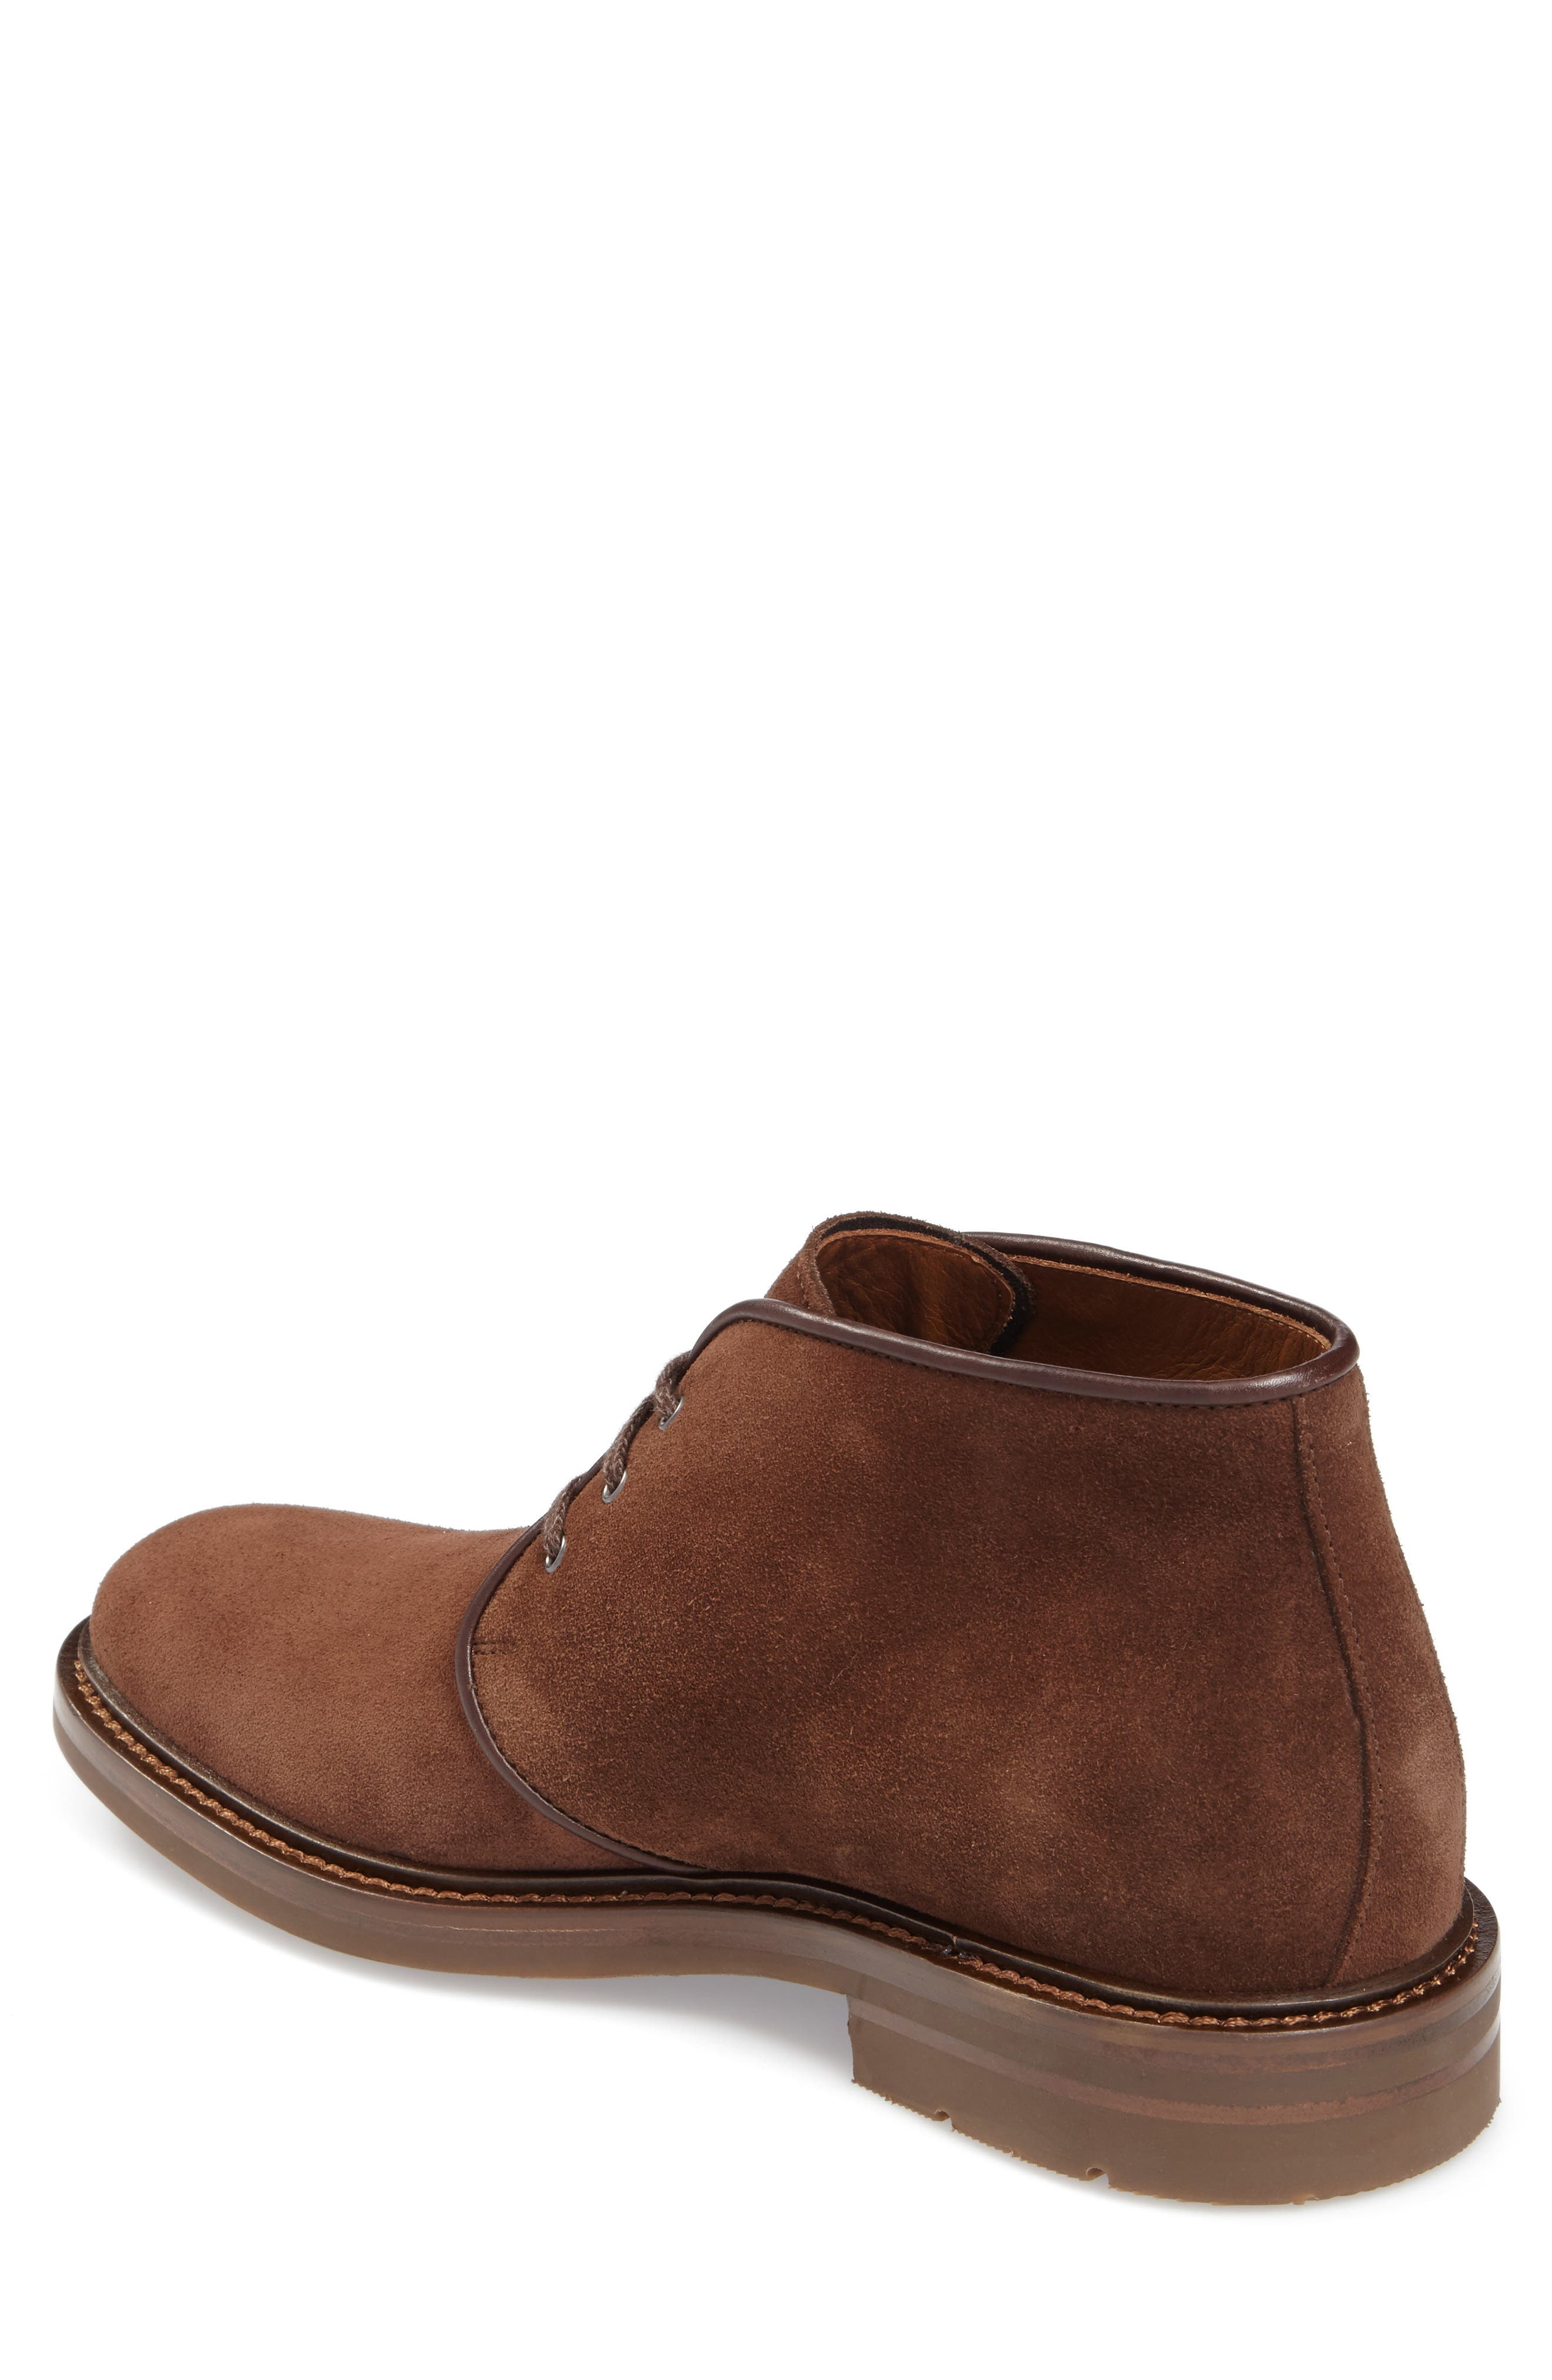 Alternate Image 2  - Aquatalia Raphael Chukka Boot (Men)